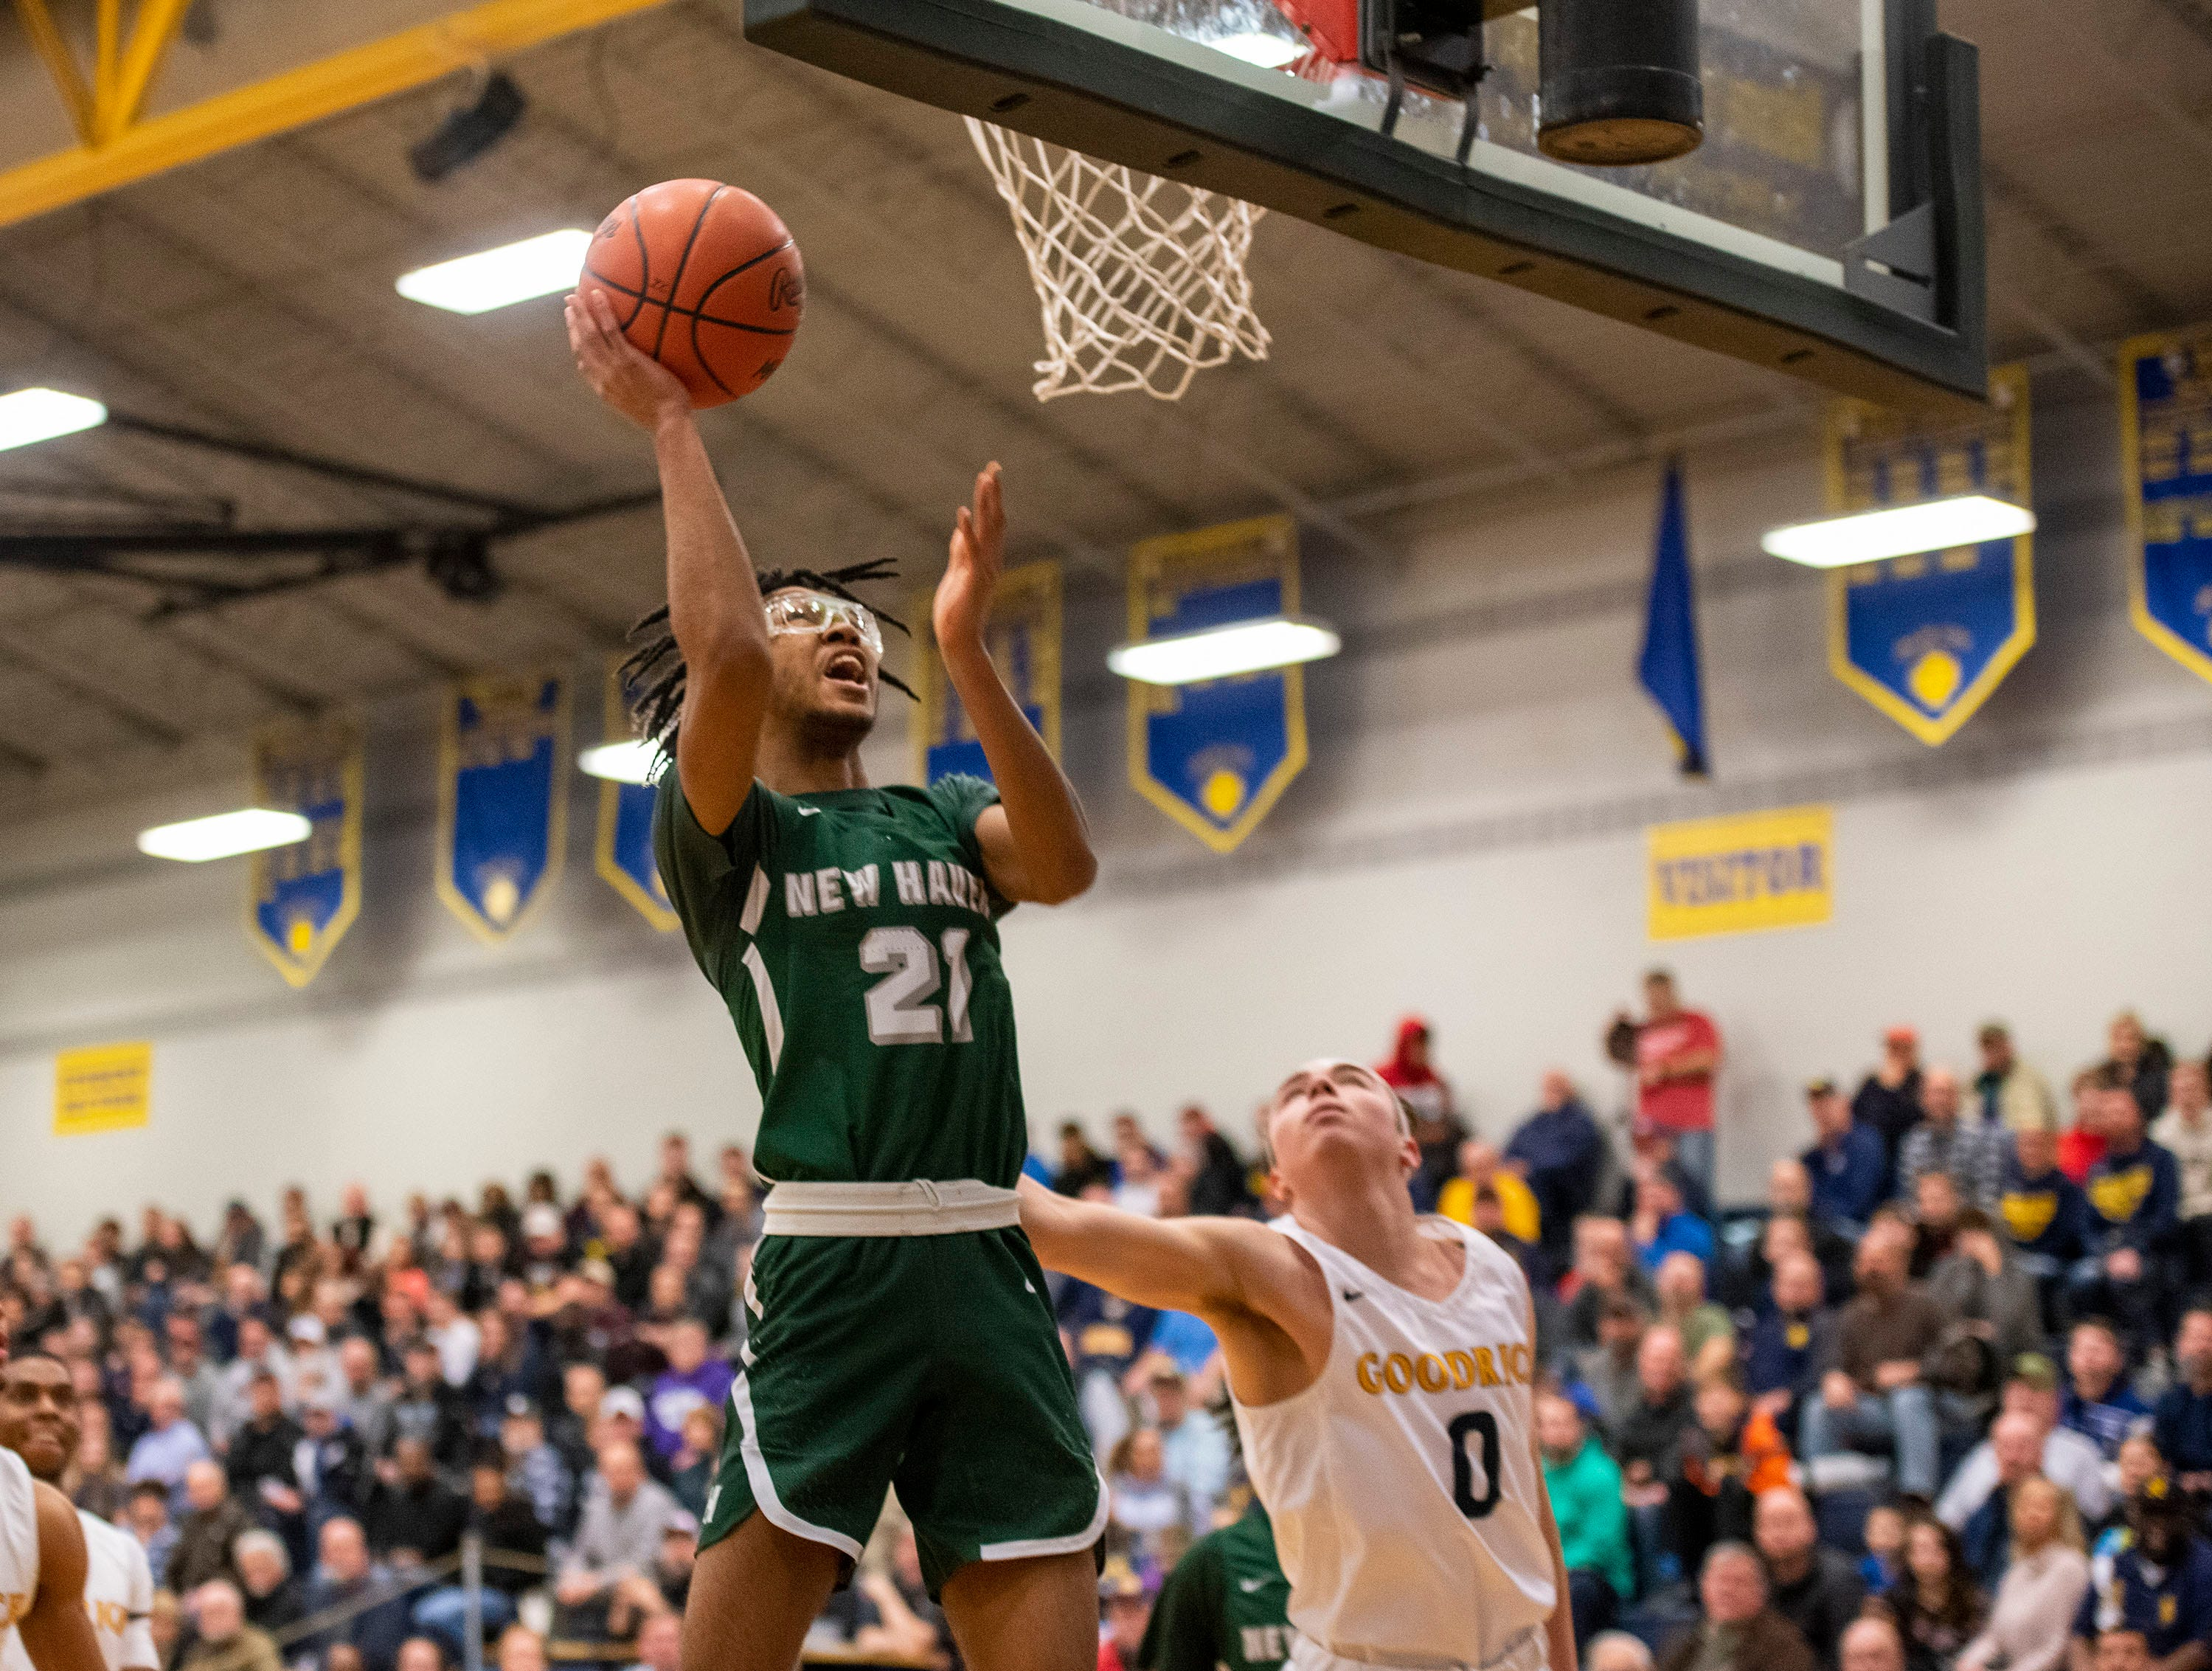 New Haven High School's Jamir Farrior (21) jumps to score in the MHSAA District 2 basketball regionals against Goodrich High School Tuesday, March 5, 2019 at Imlay City High School.